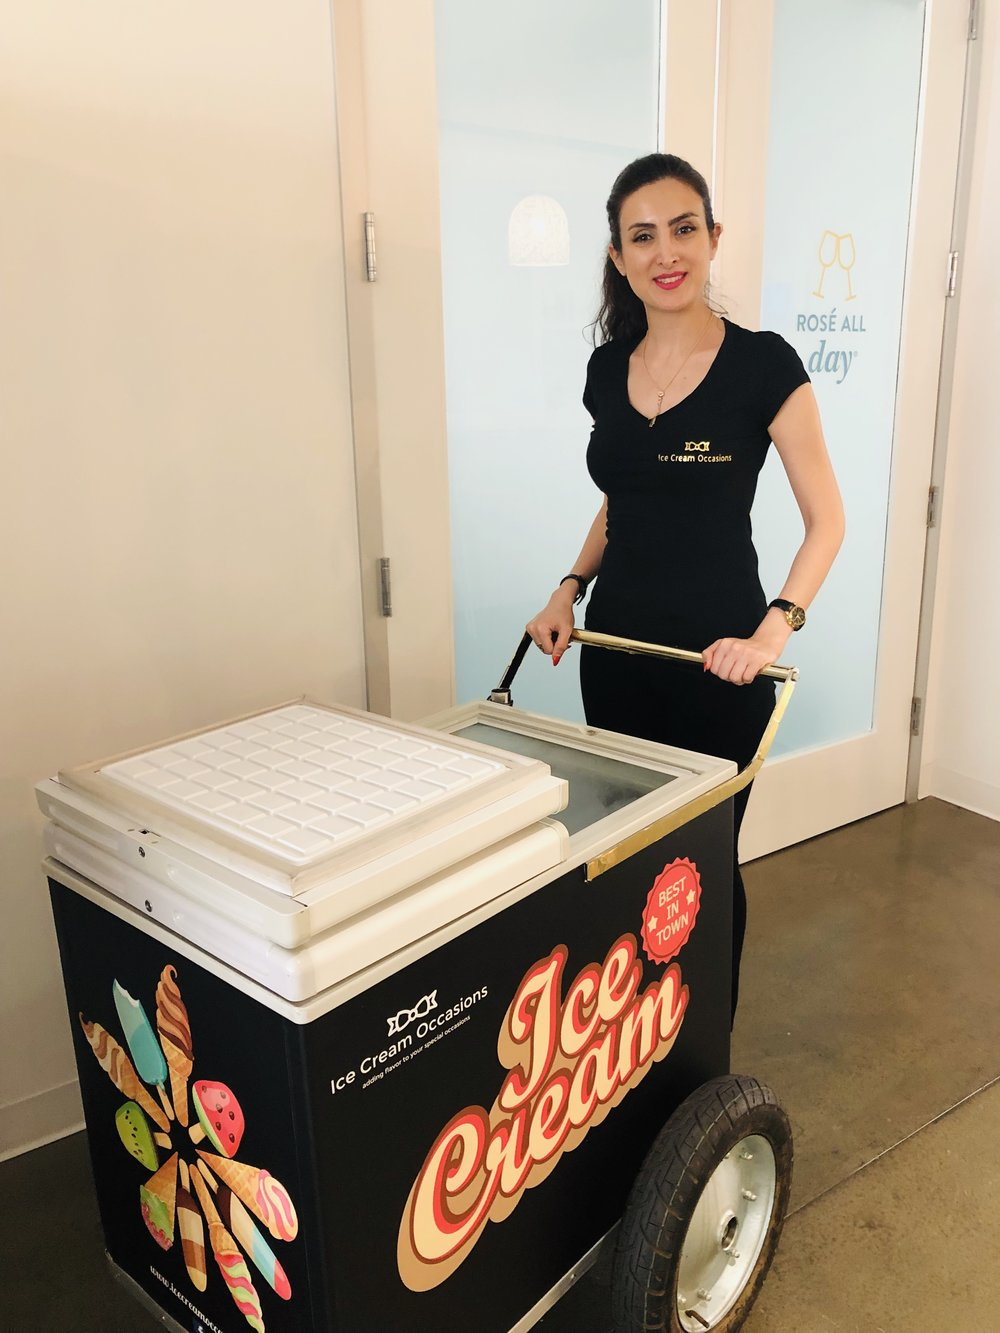 Ice cream cart rental in Inglewood, CA for office party